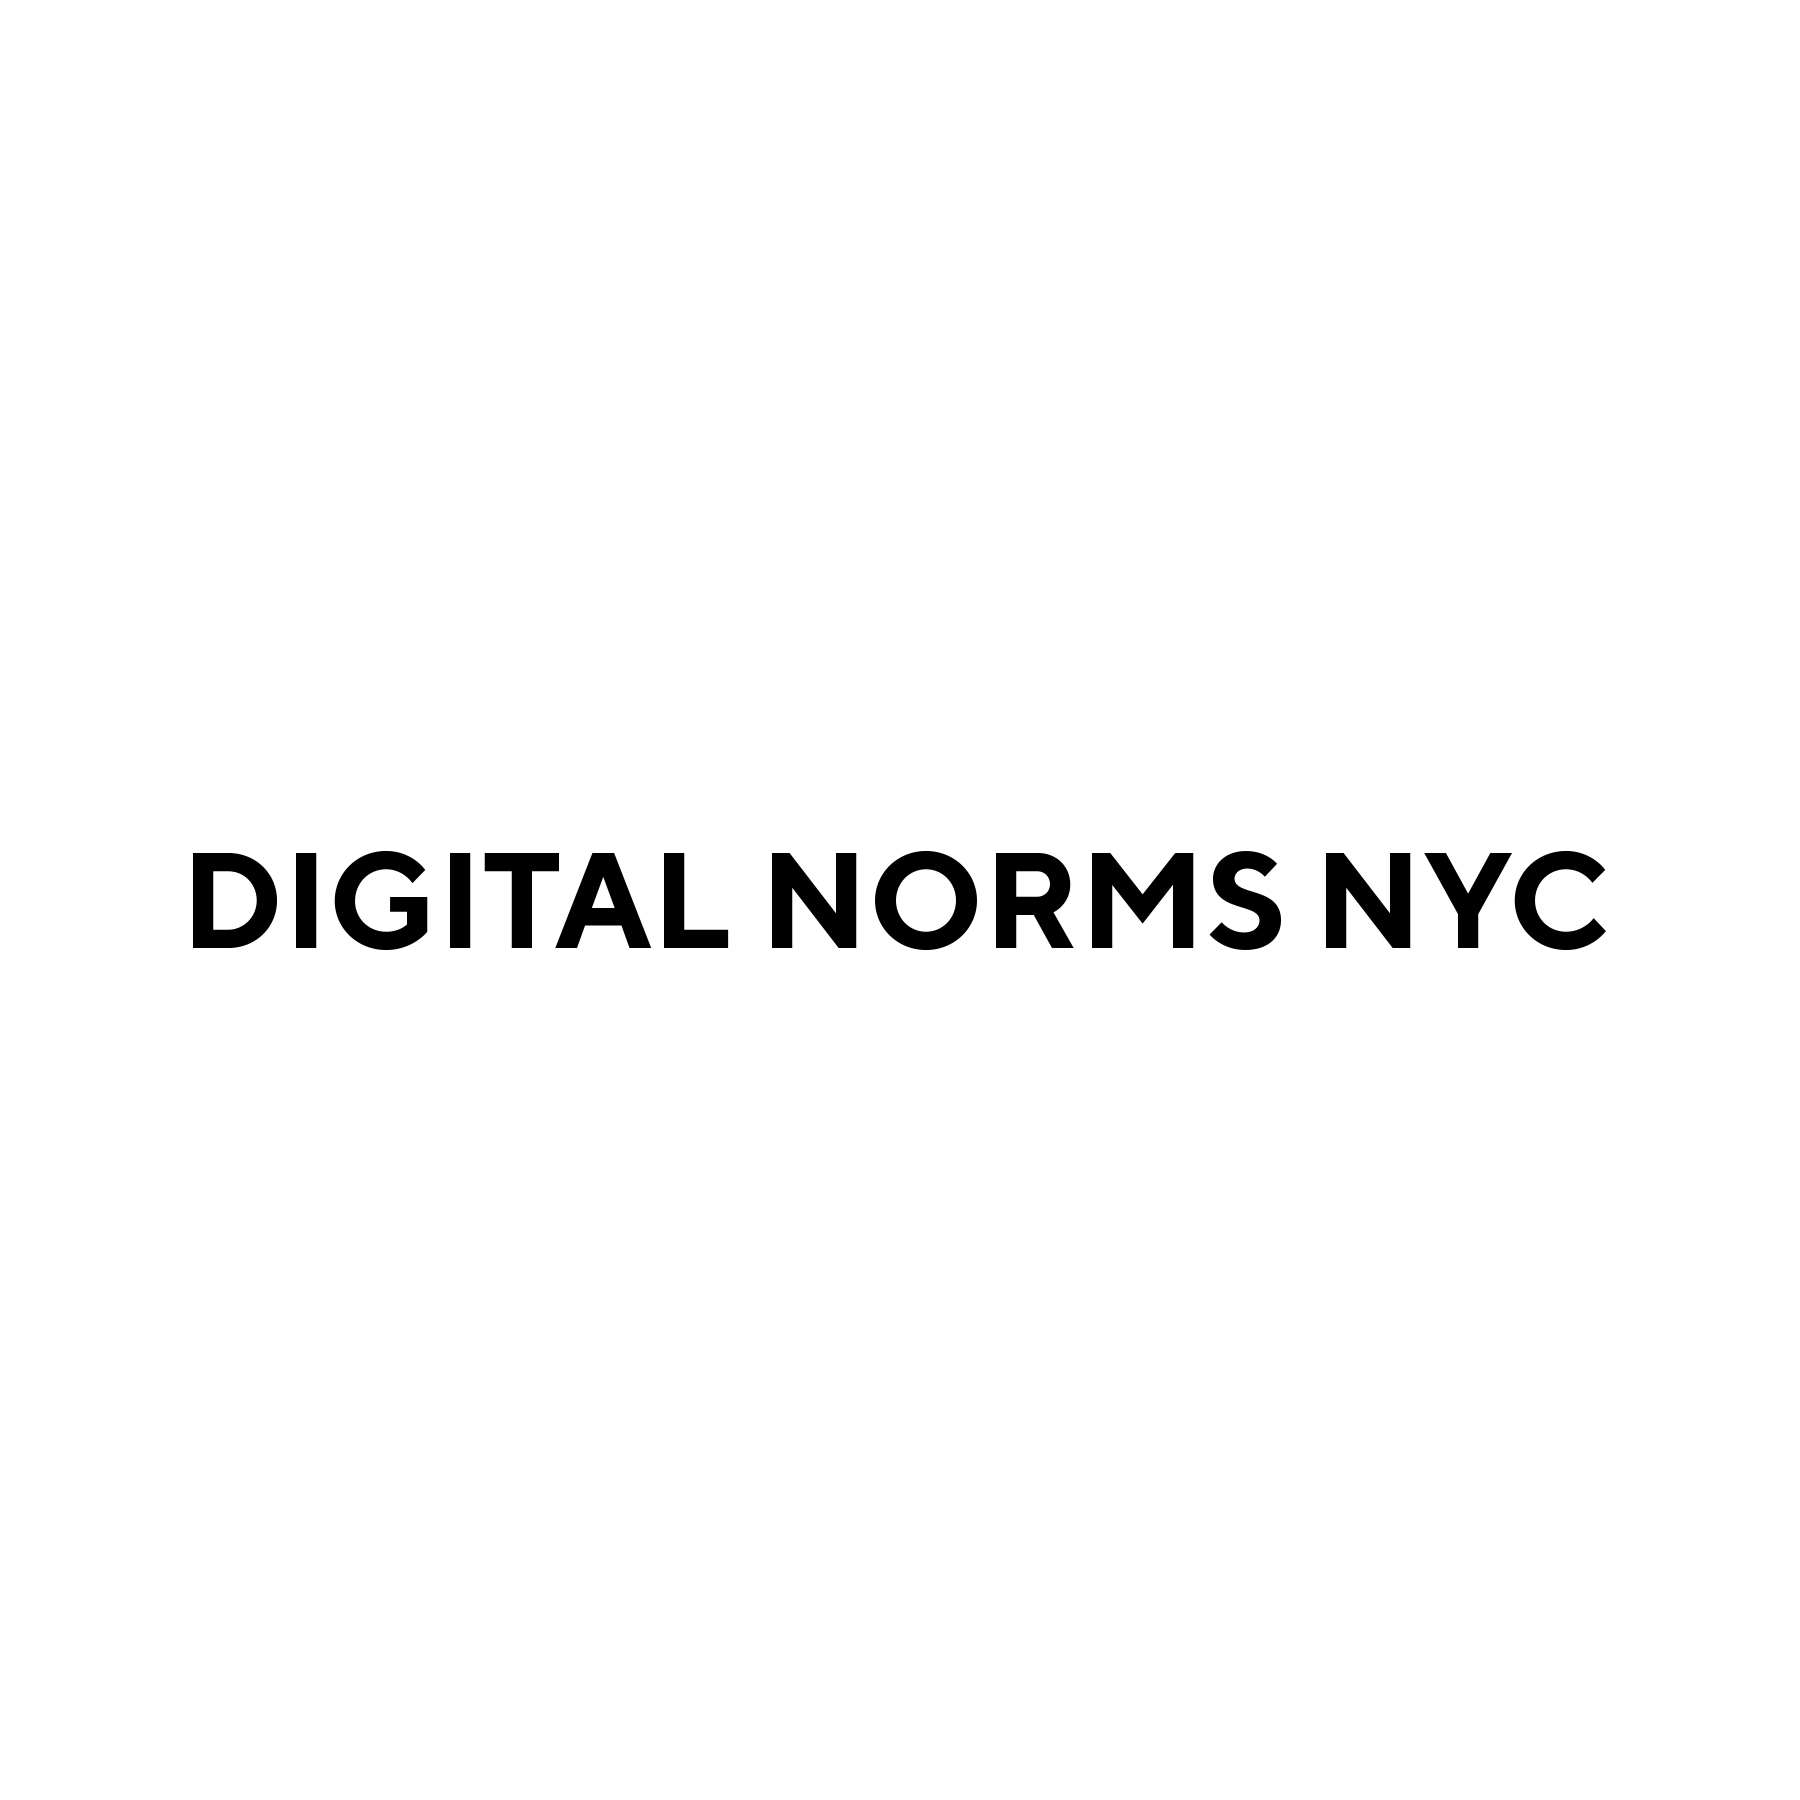 Digital Norms Font Option Budget Logo Express by Brand G Creative 07 OCTOBER 2017.jpg